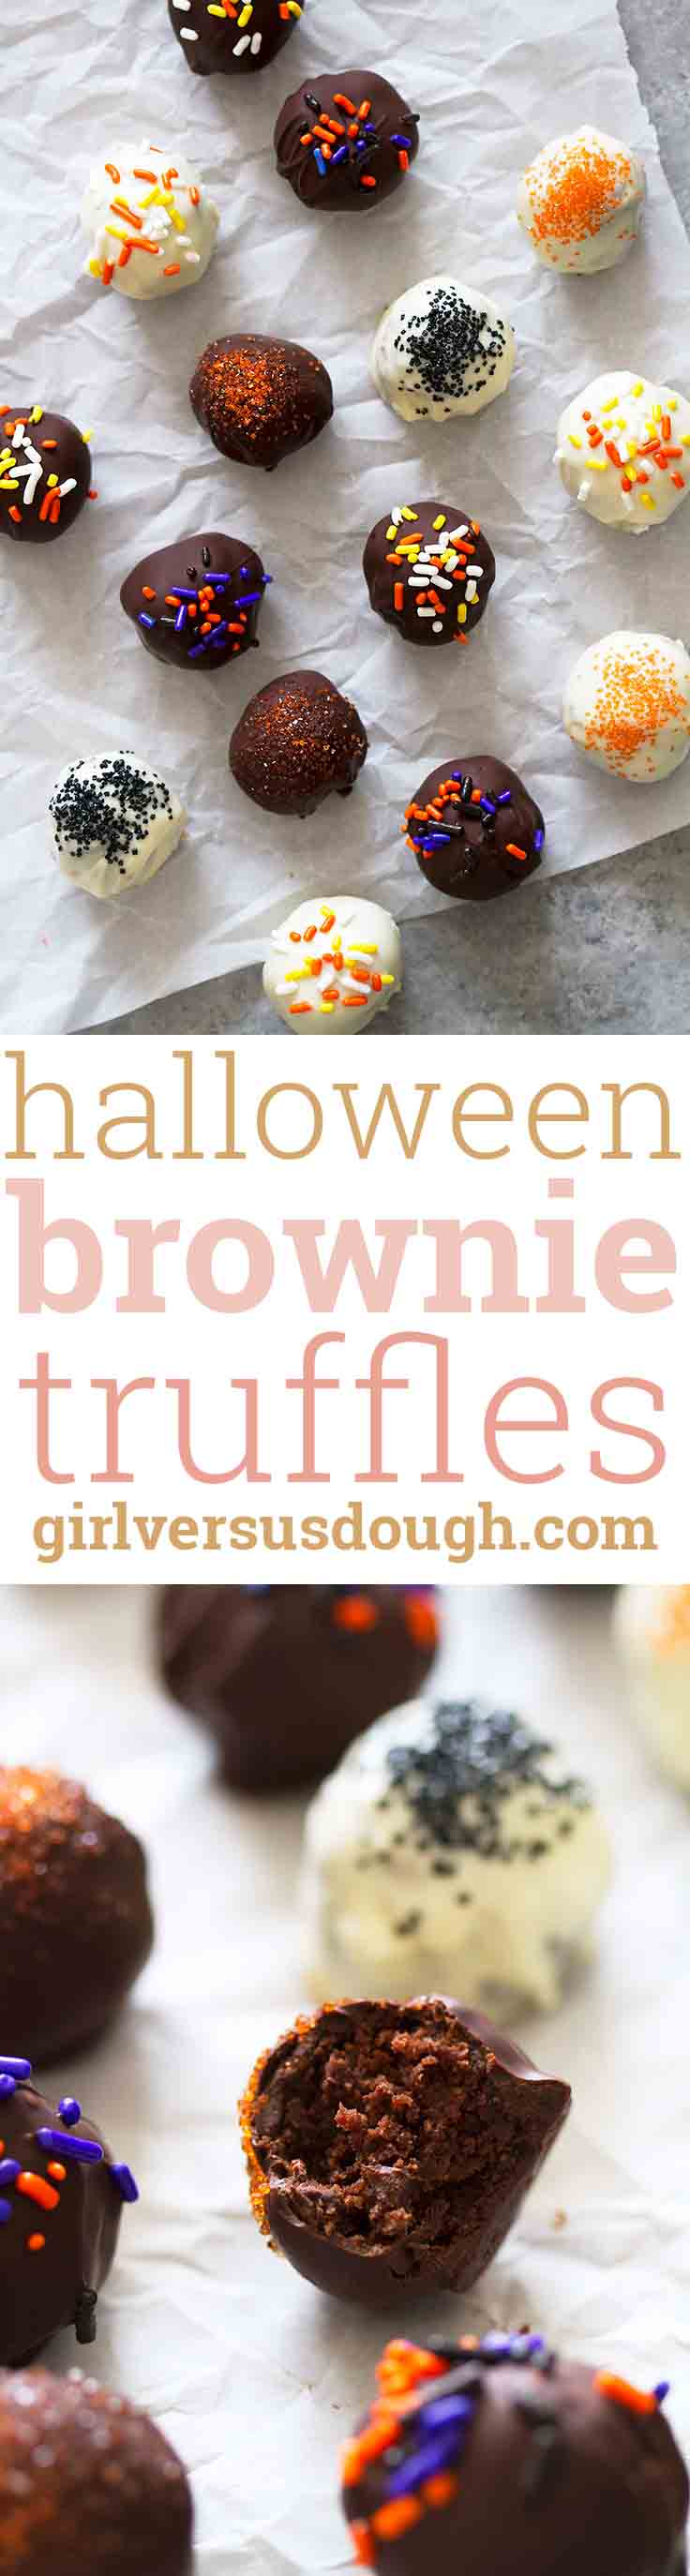 Halloween Brownie Truffles -- easy and decadent homemade truffles with fudgy brownie centers and spooky sprinkles. girlversusdough.com @girlversusdough